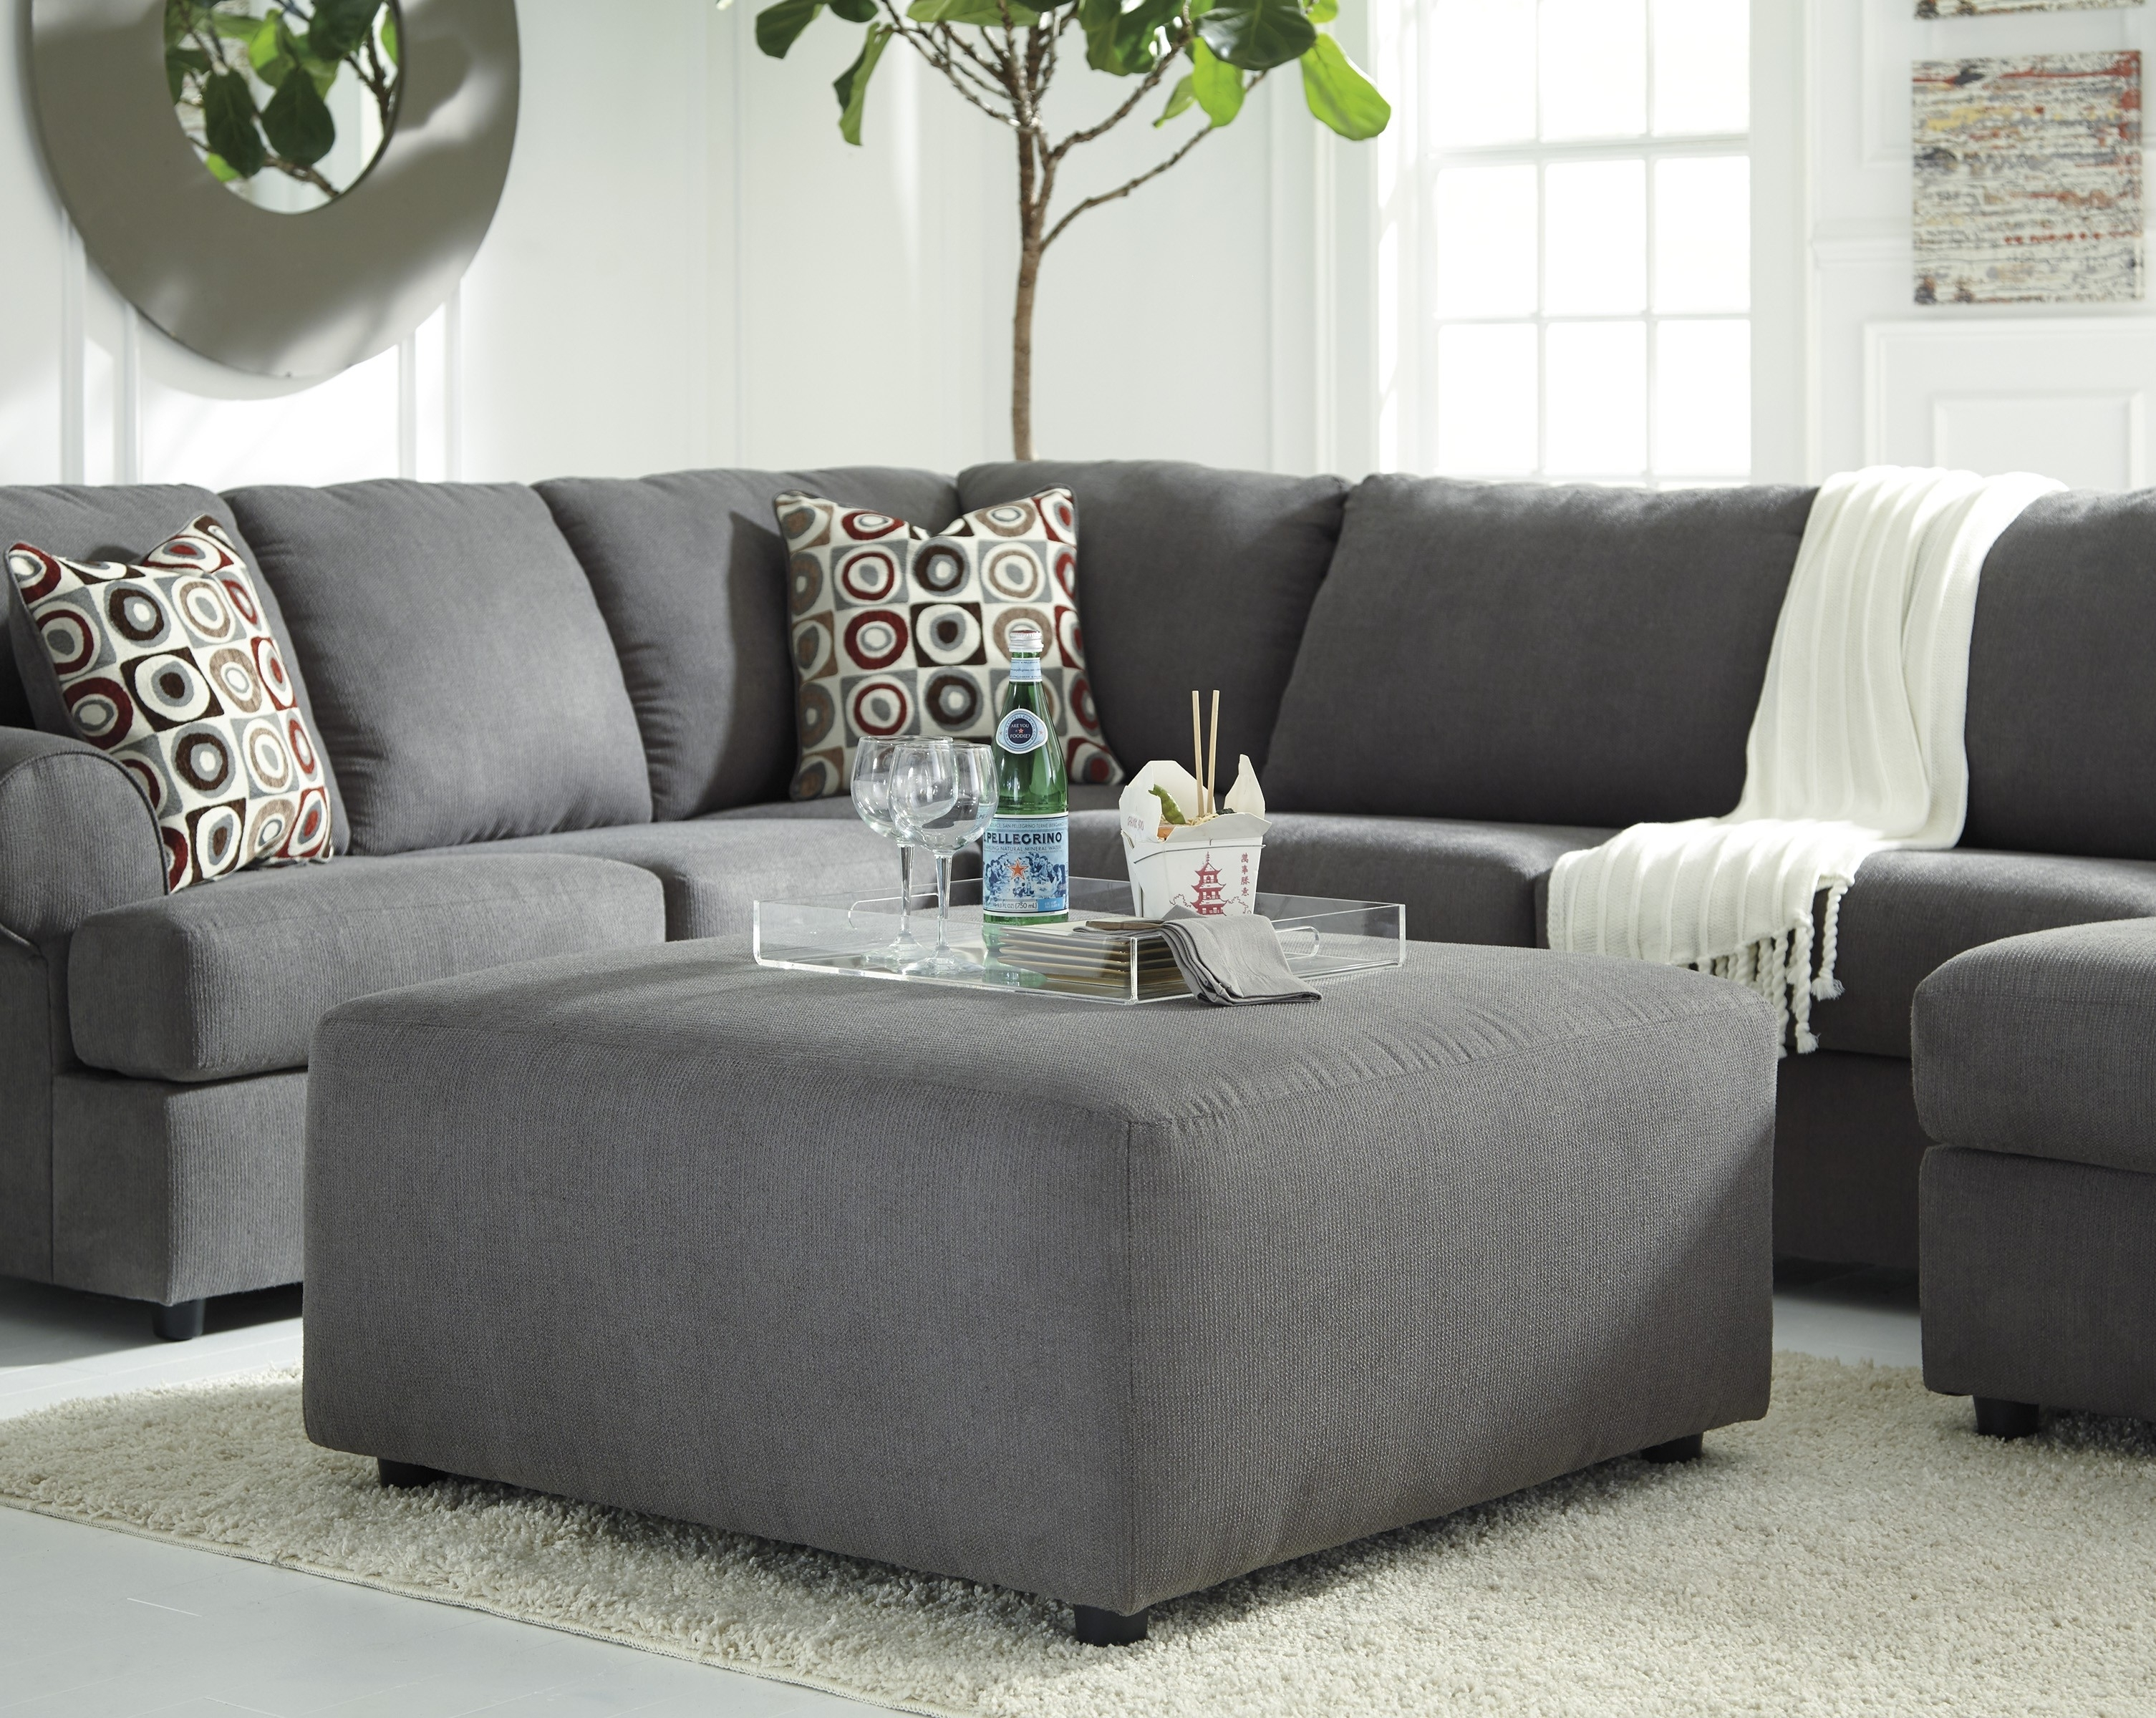 Jayceon Steel 3Pc Laf Sofa Sectional | Catosfera Throughout Malbry Point 3 Piece Sectionals With Laf Chaise (Image 16 of 25)